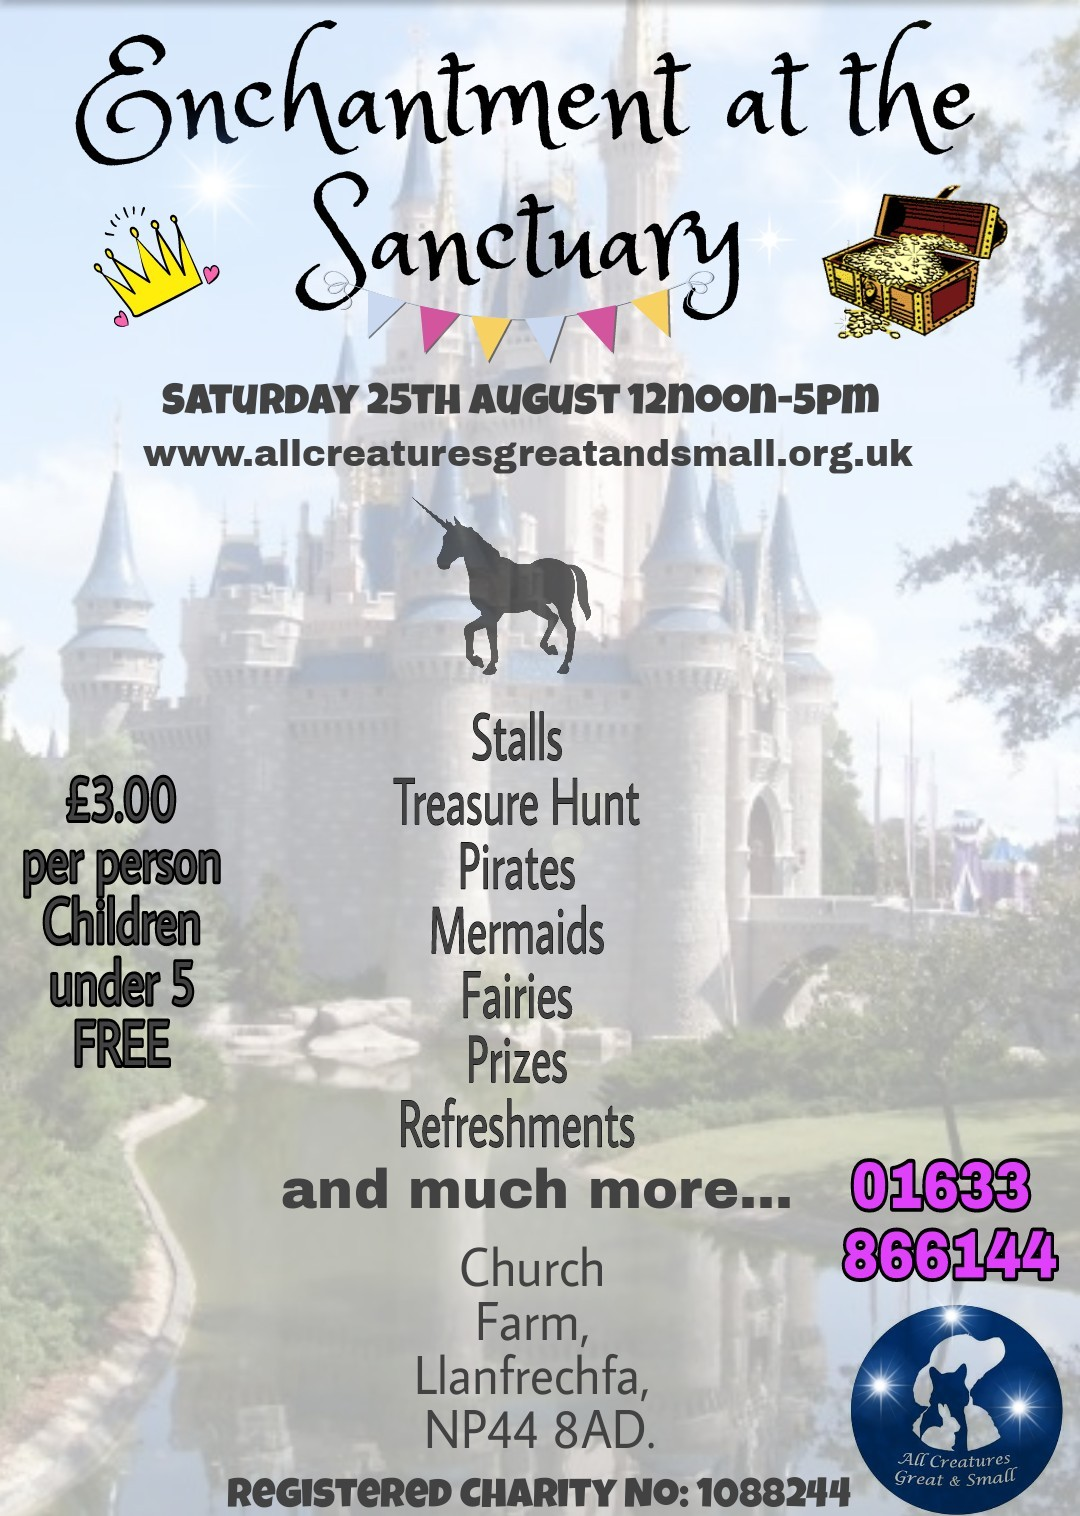 Enchantment at the Sanctuary - All Creatures Great & Small Open Day 2018